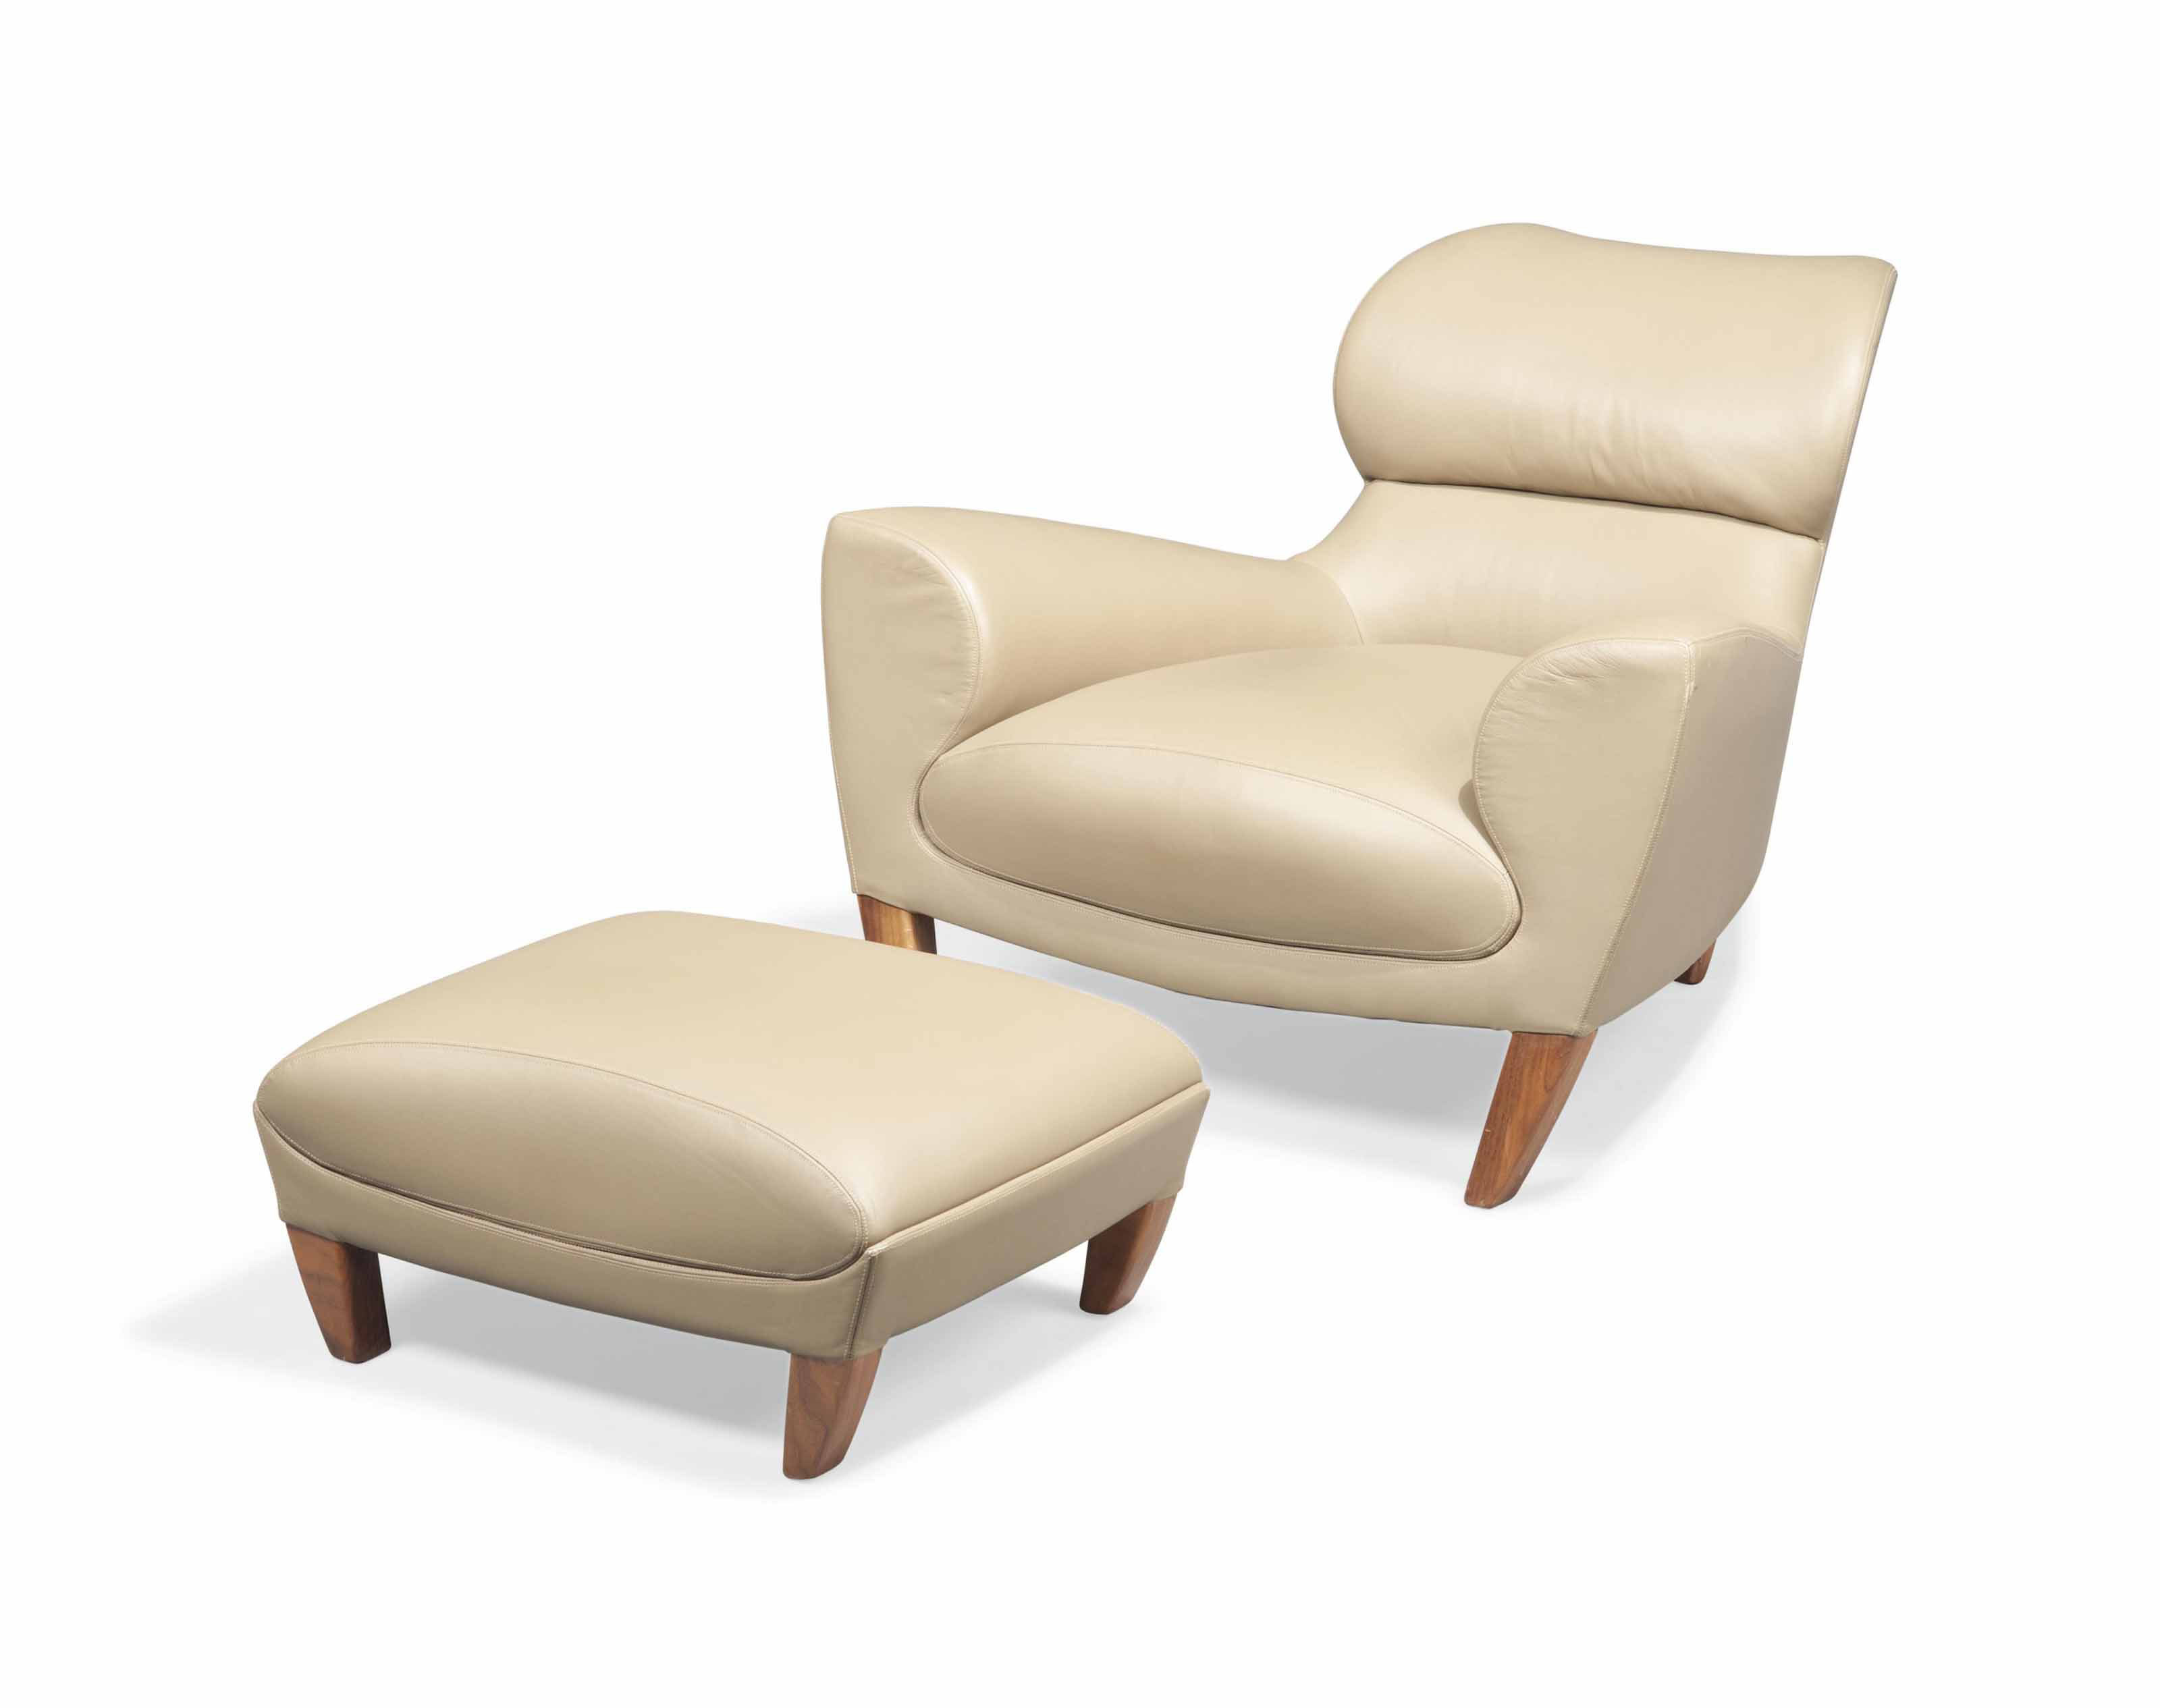 AN 'ASTONETTE' ARMCHAIR AND FOOTSTOOL